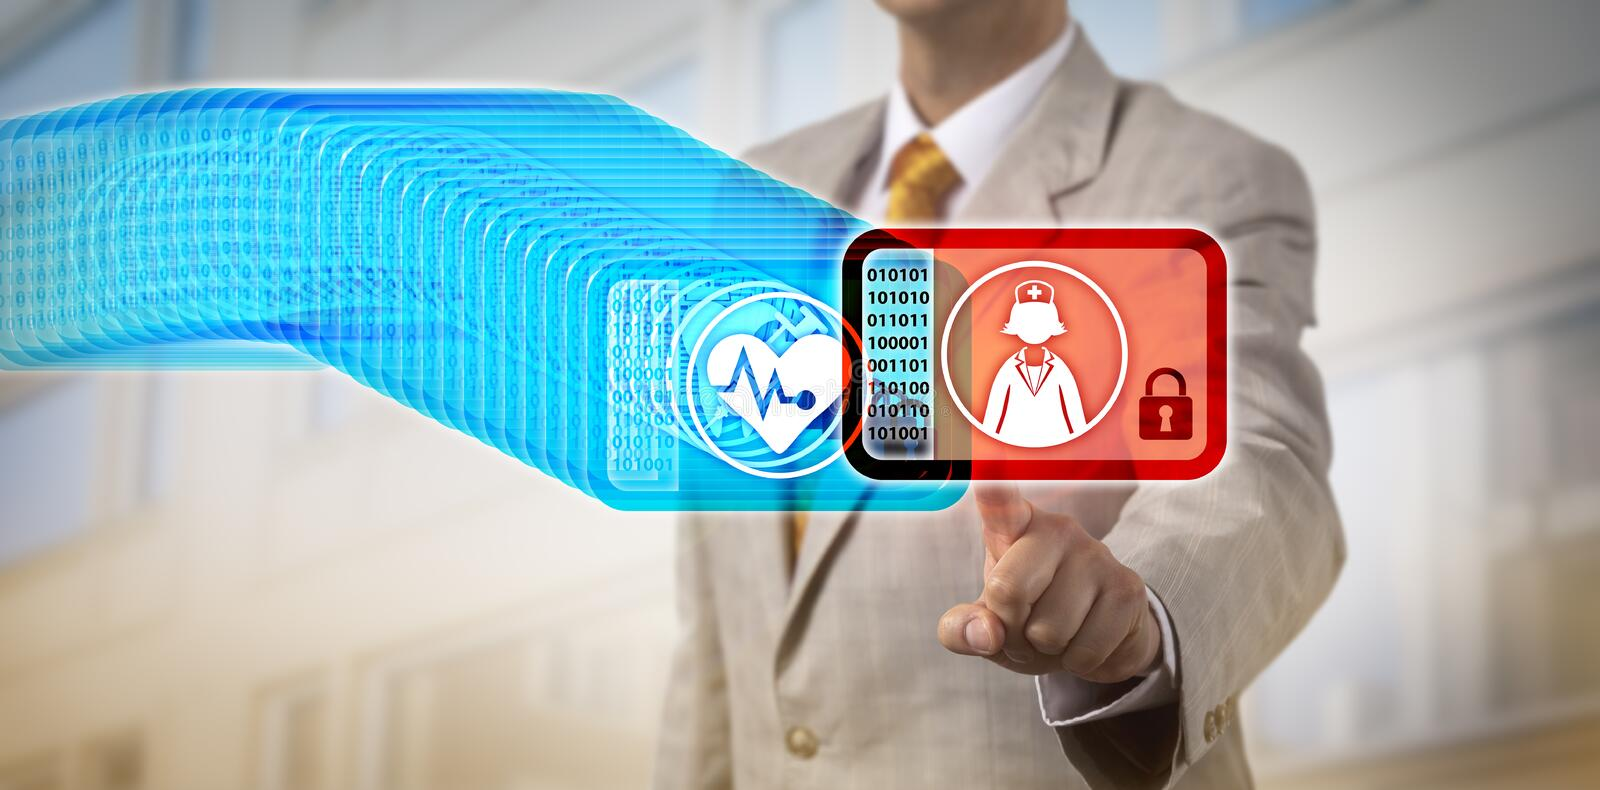 Healthcare Manager Accessing Latest Block Via DLT royalty free stock photo